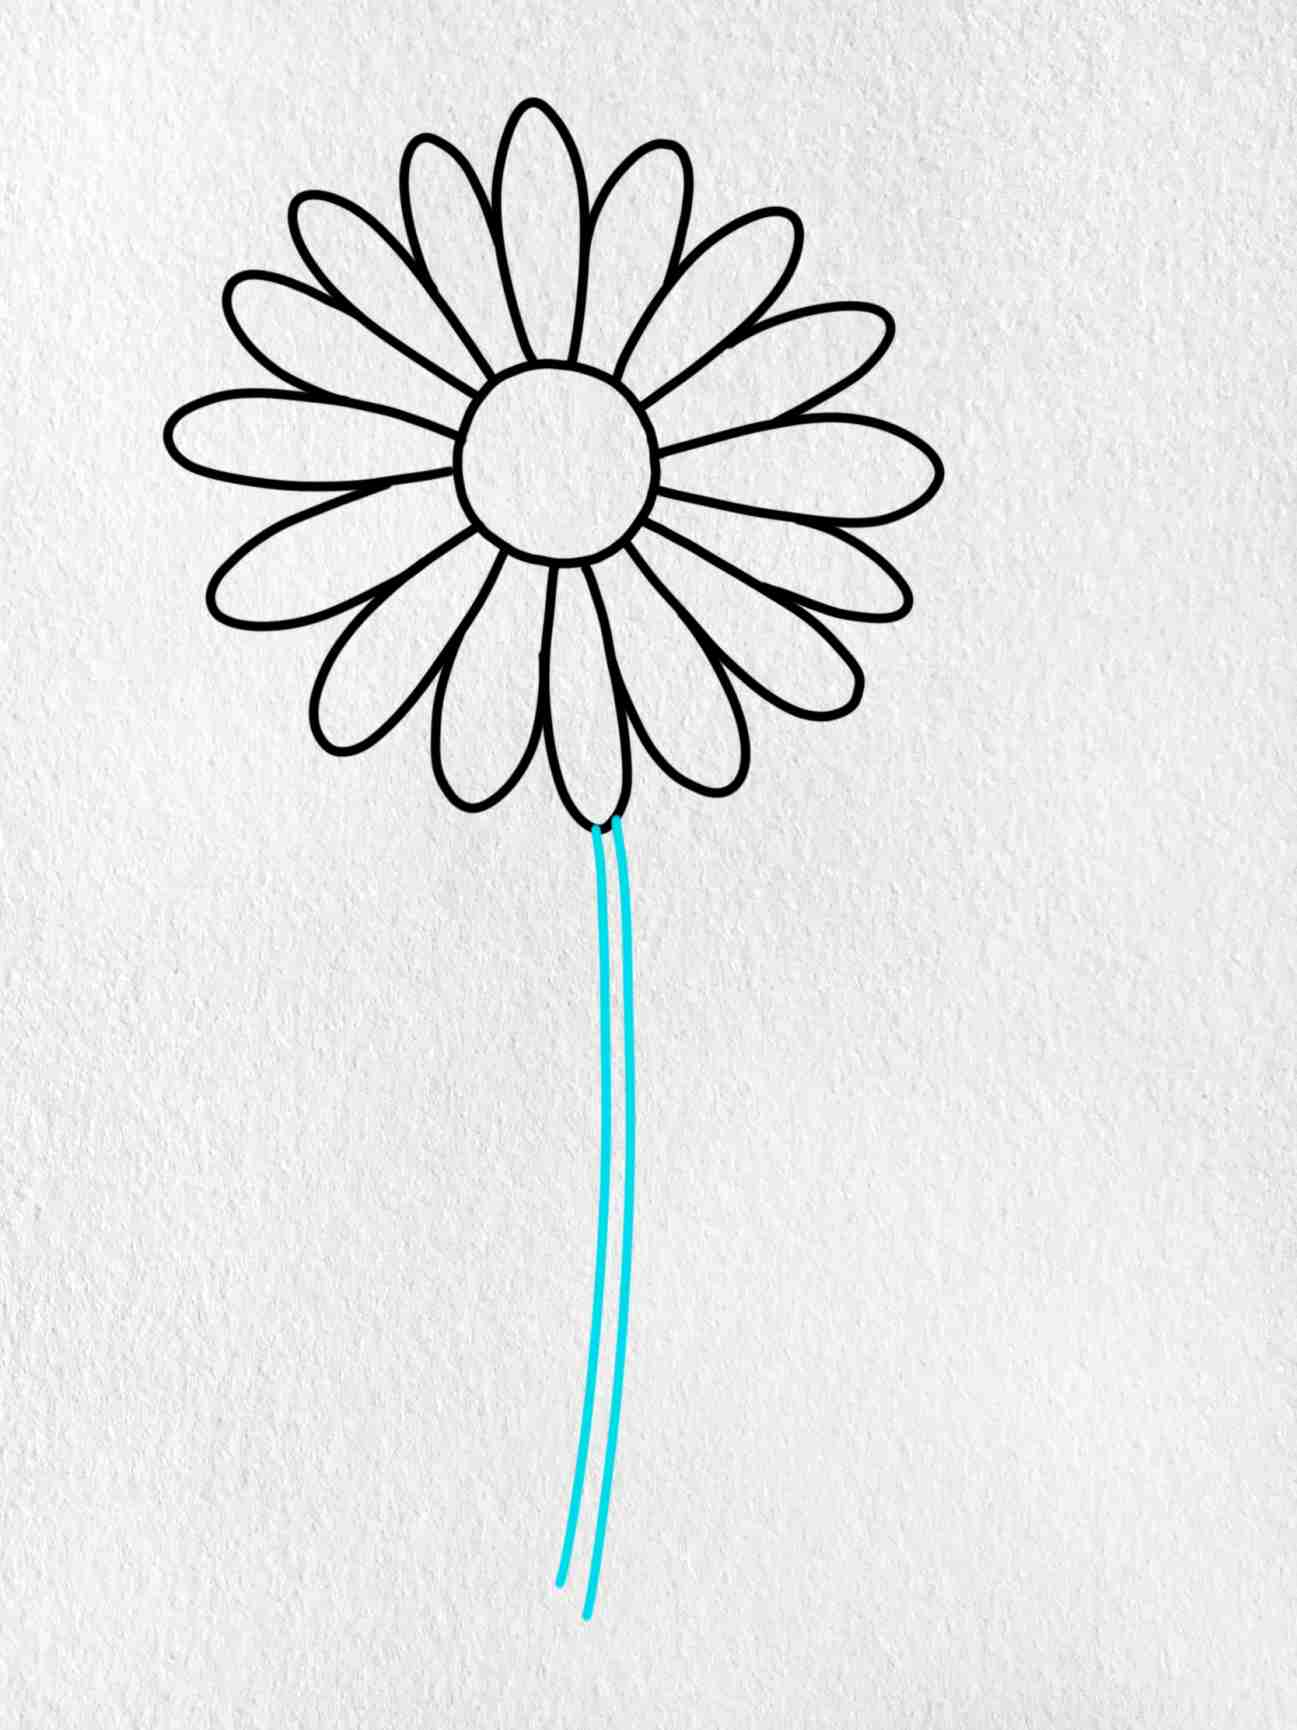 How To Draw A Daisy Flower: Step 4